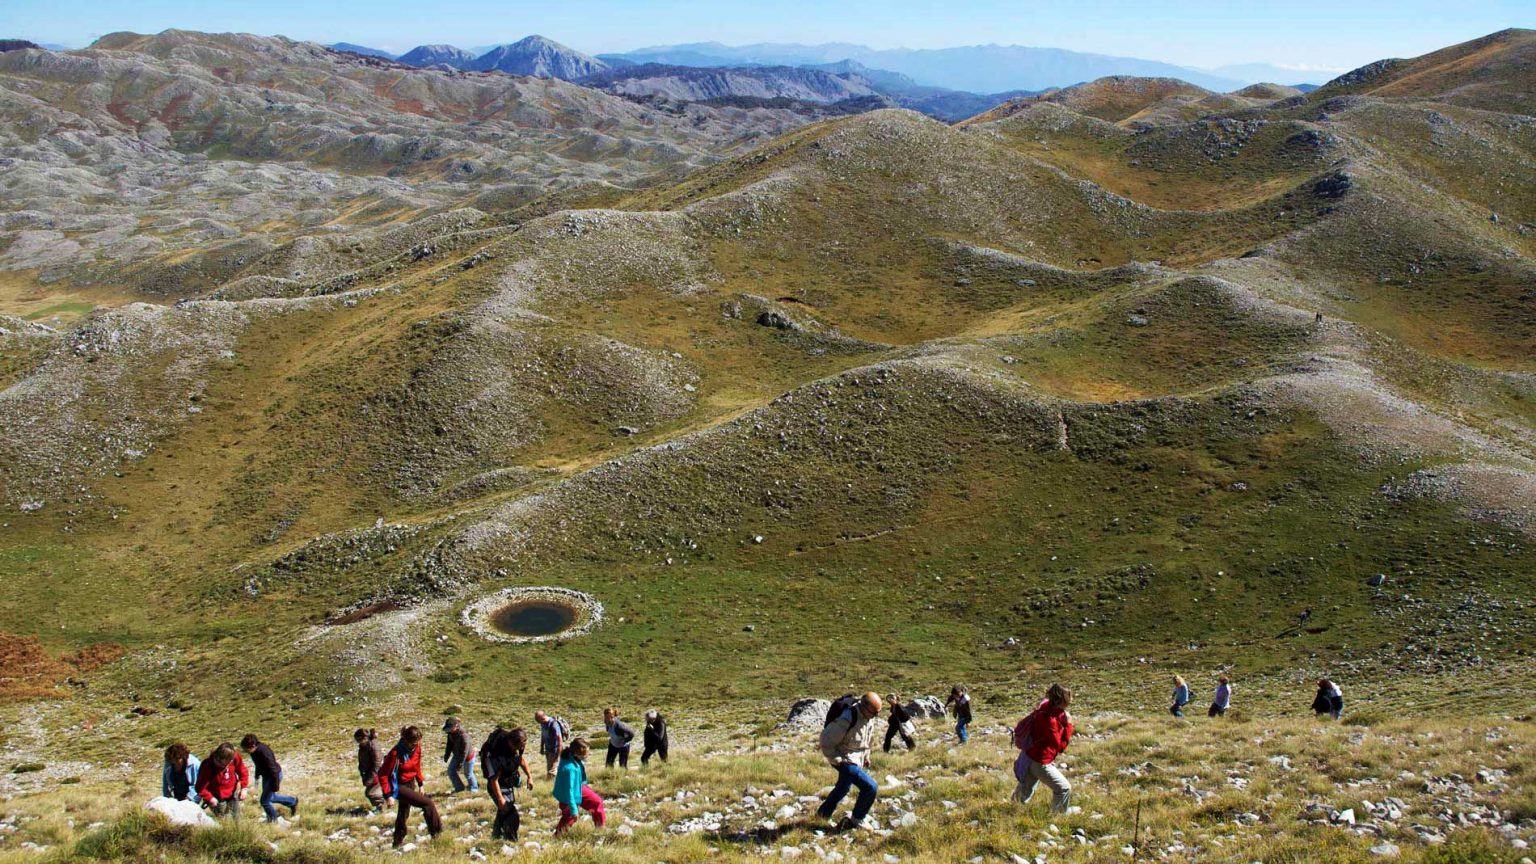 Source: outdooralbania.com.